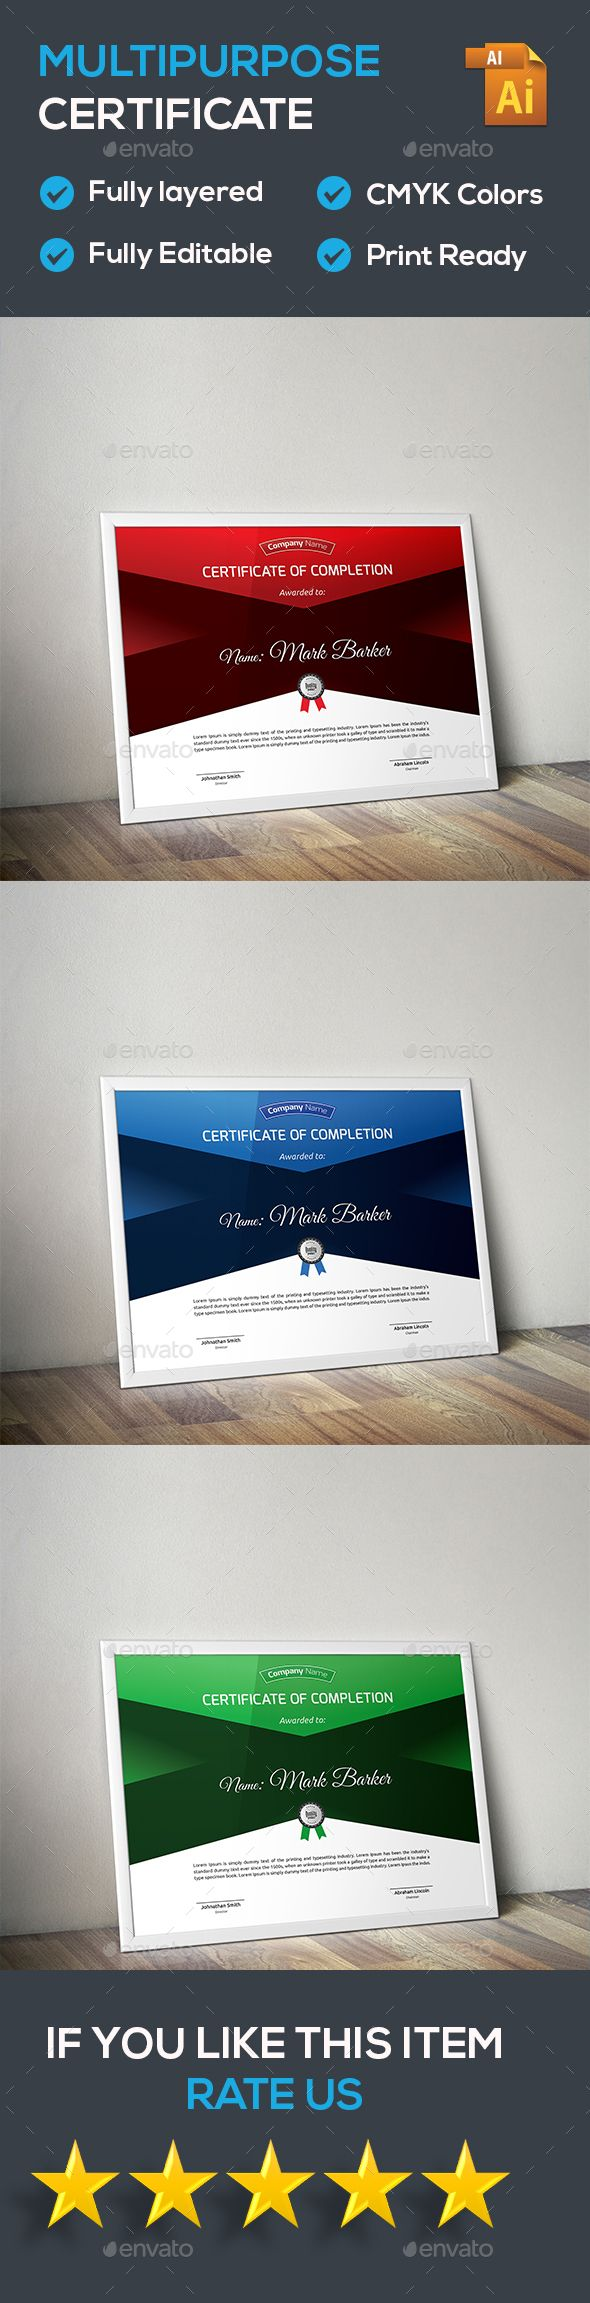 Certificate Template Vector EPS. Download here: http://graphicriver.net/item/certificate/15853630?ref=ksioks